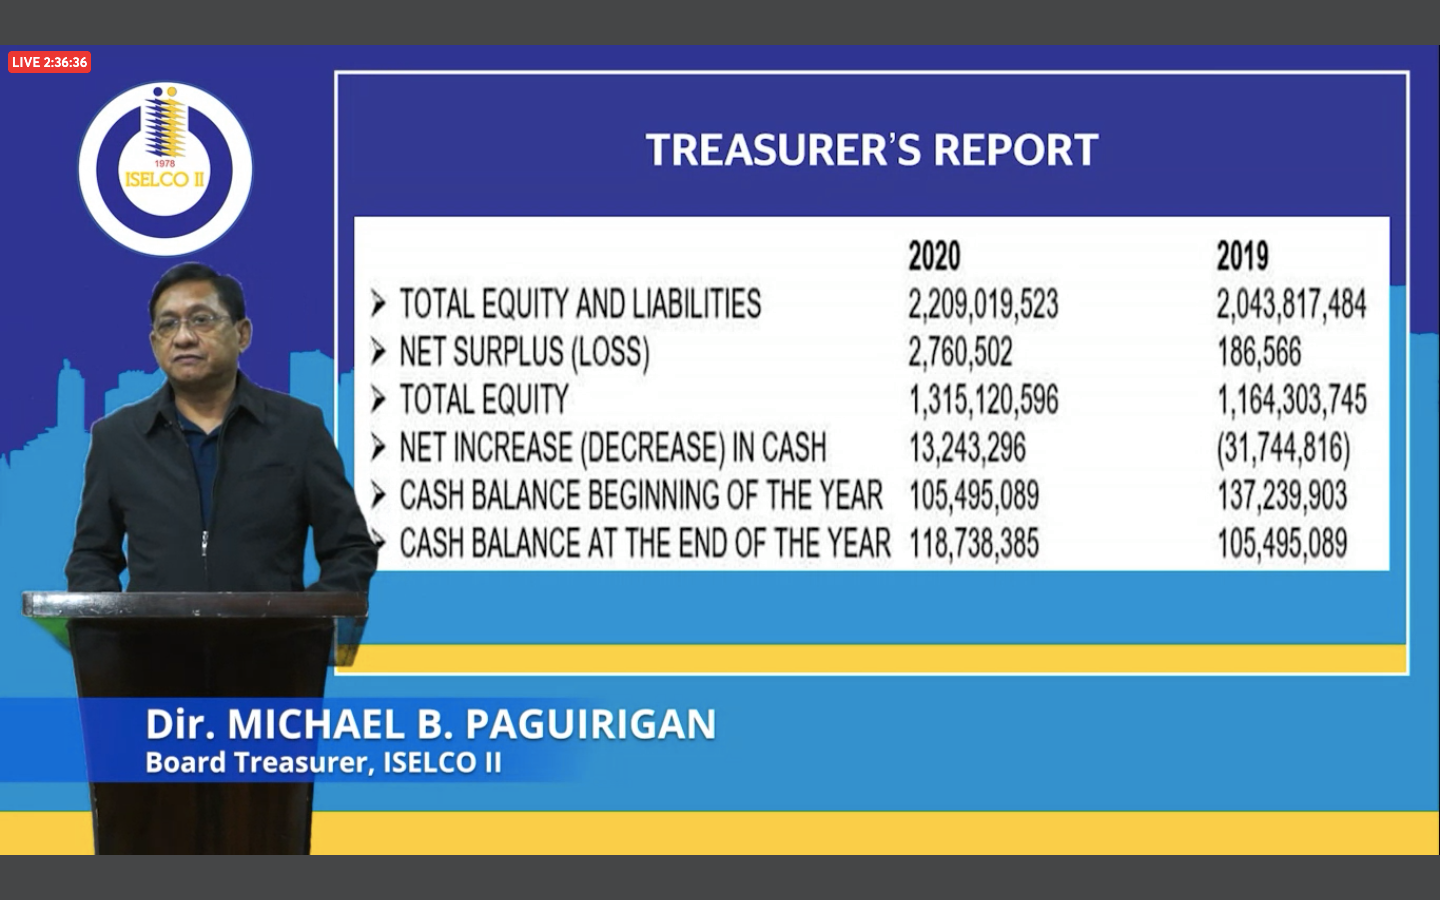 Currently on the Treasurer's Report